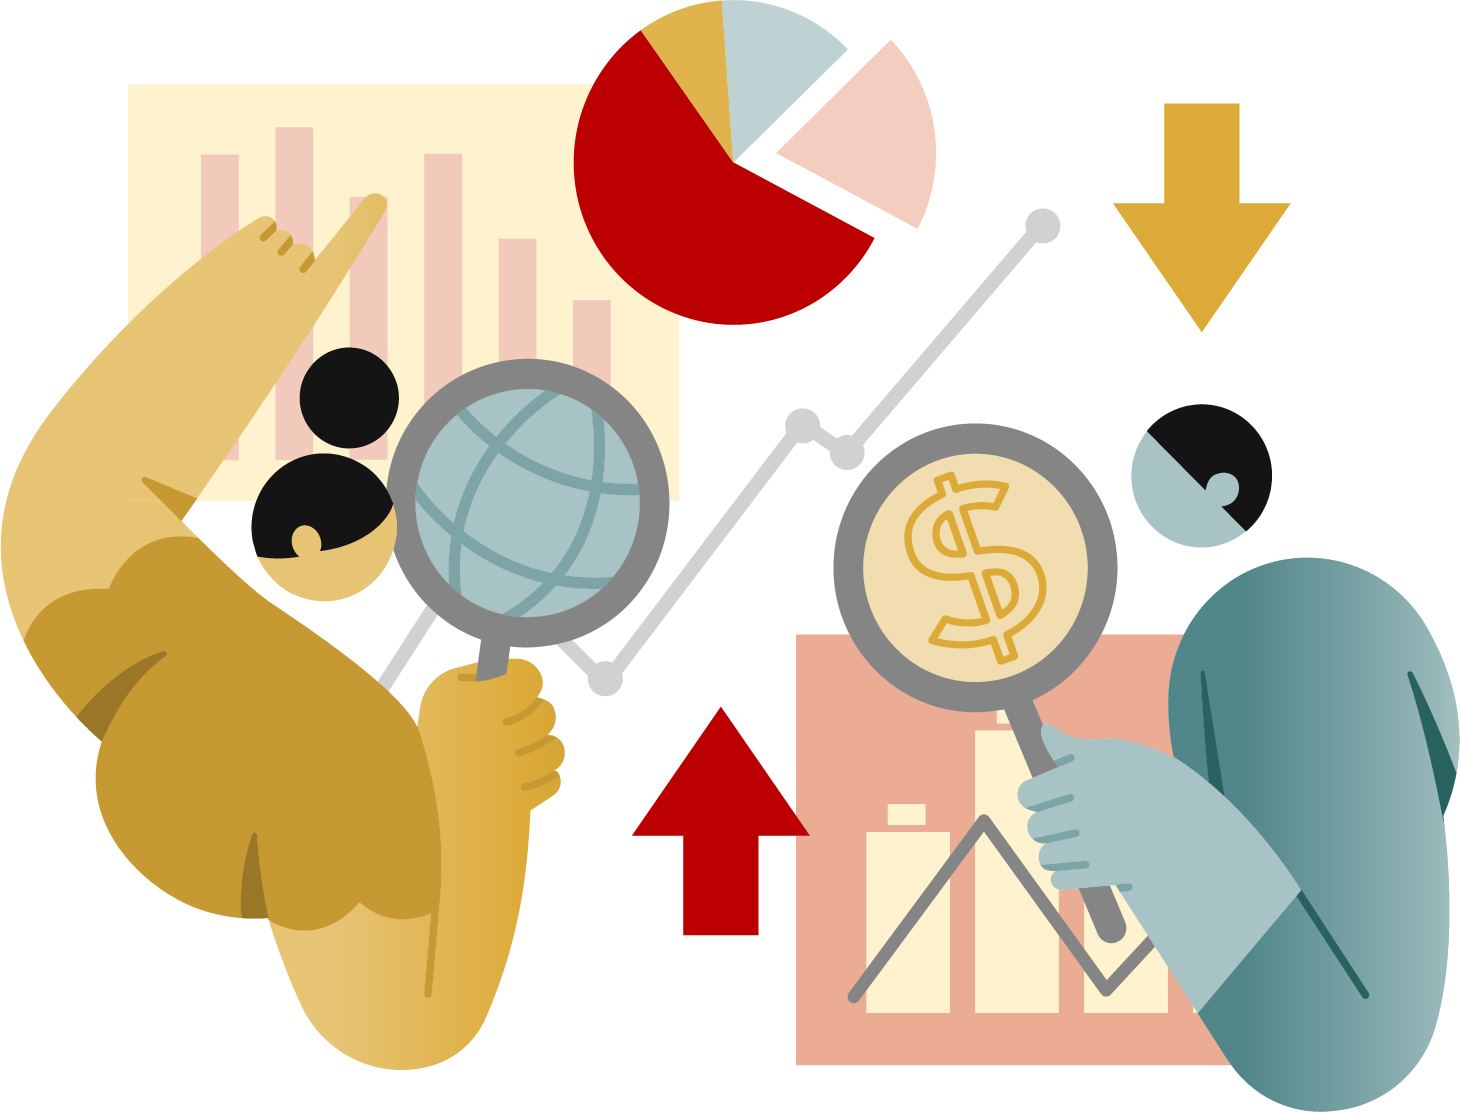 Illustration of two people using magnifying glasses to analyze charts